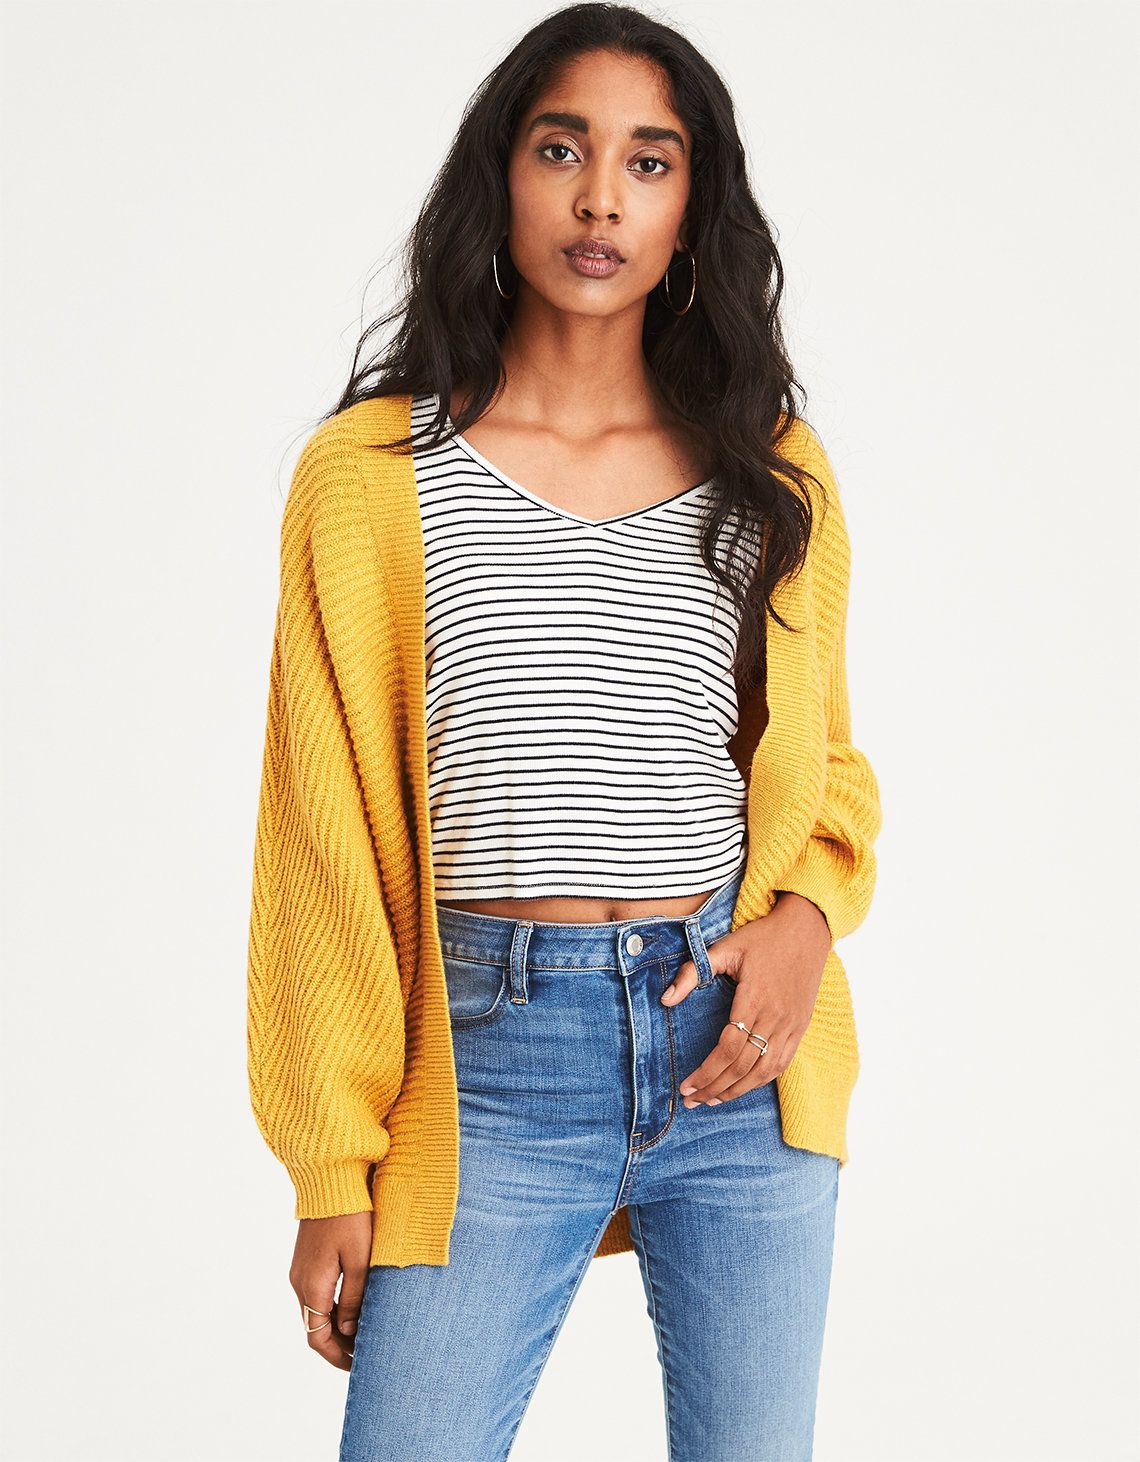 ff5fd52038f92 mustard oversized cardigan | Personal Style | Cardigans for women ...